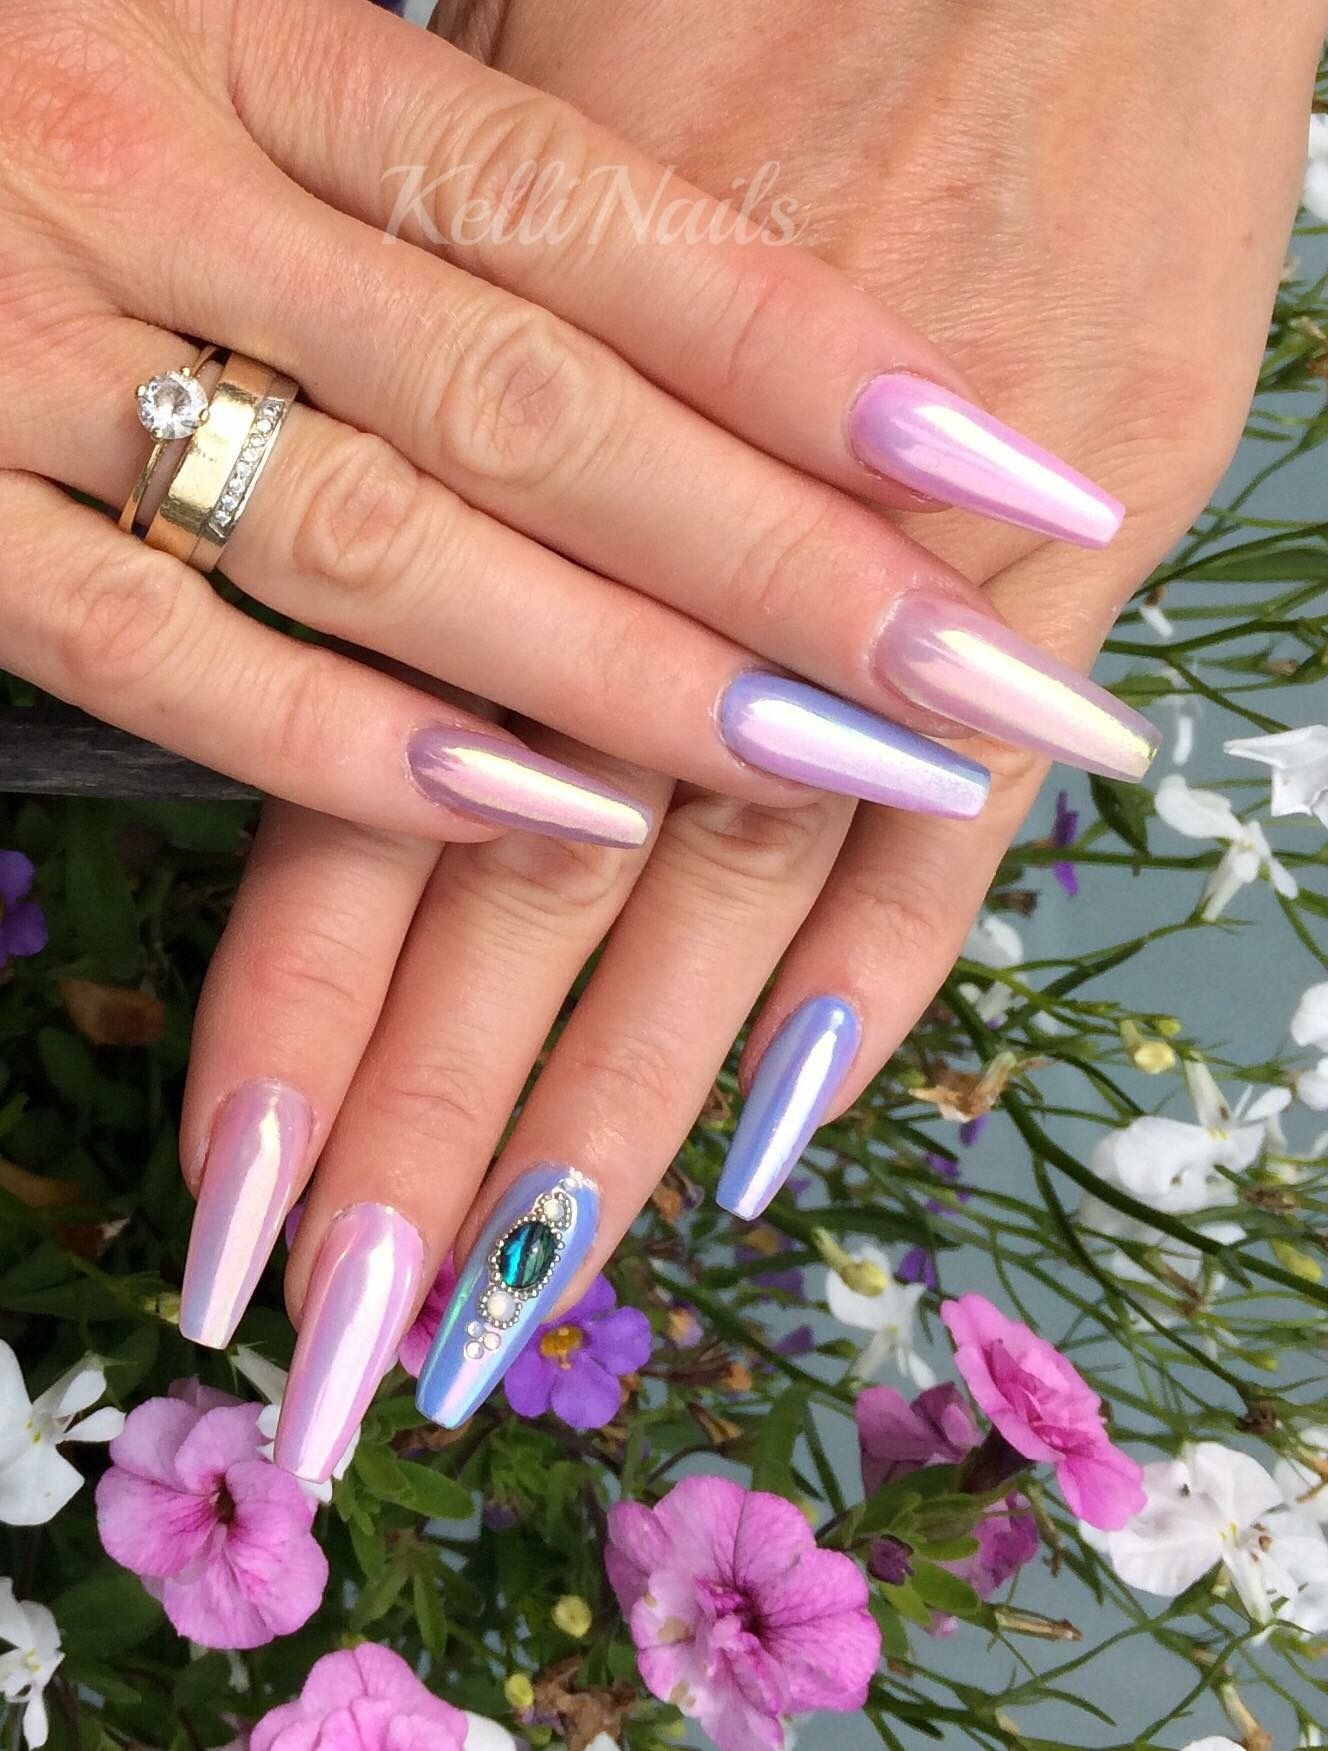 Moderne Nägel Aurora Nails Aurora Nägel Coffin Ballerina Nägel